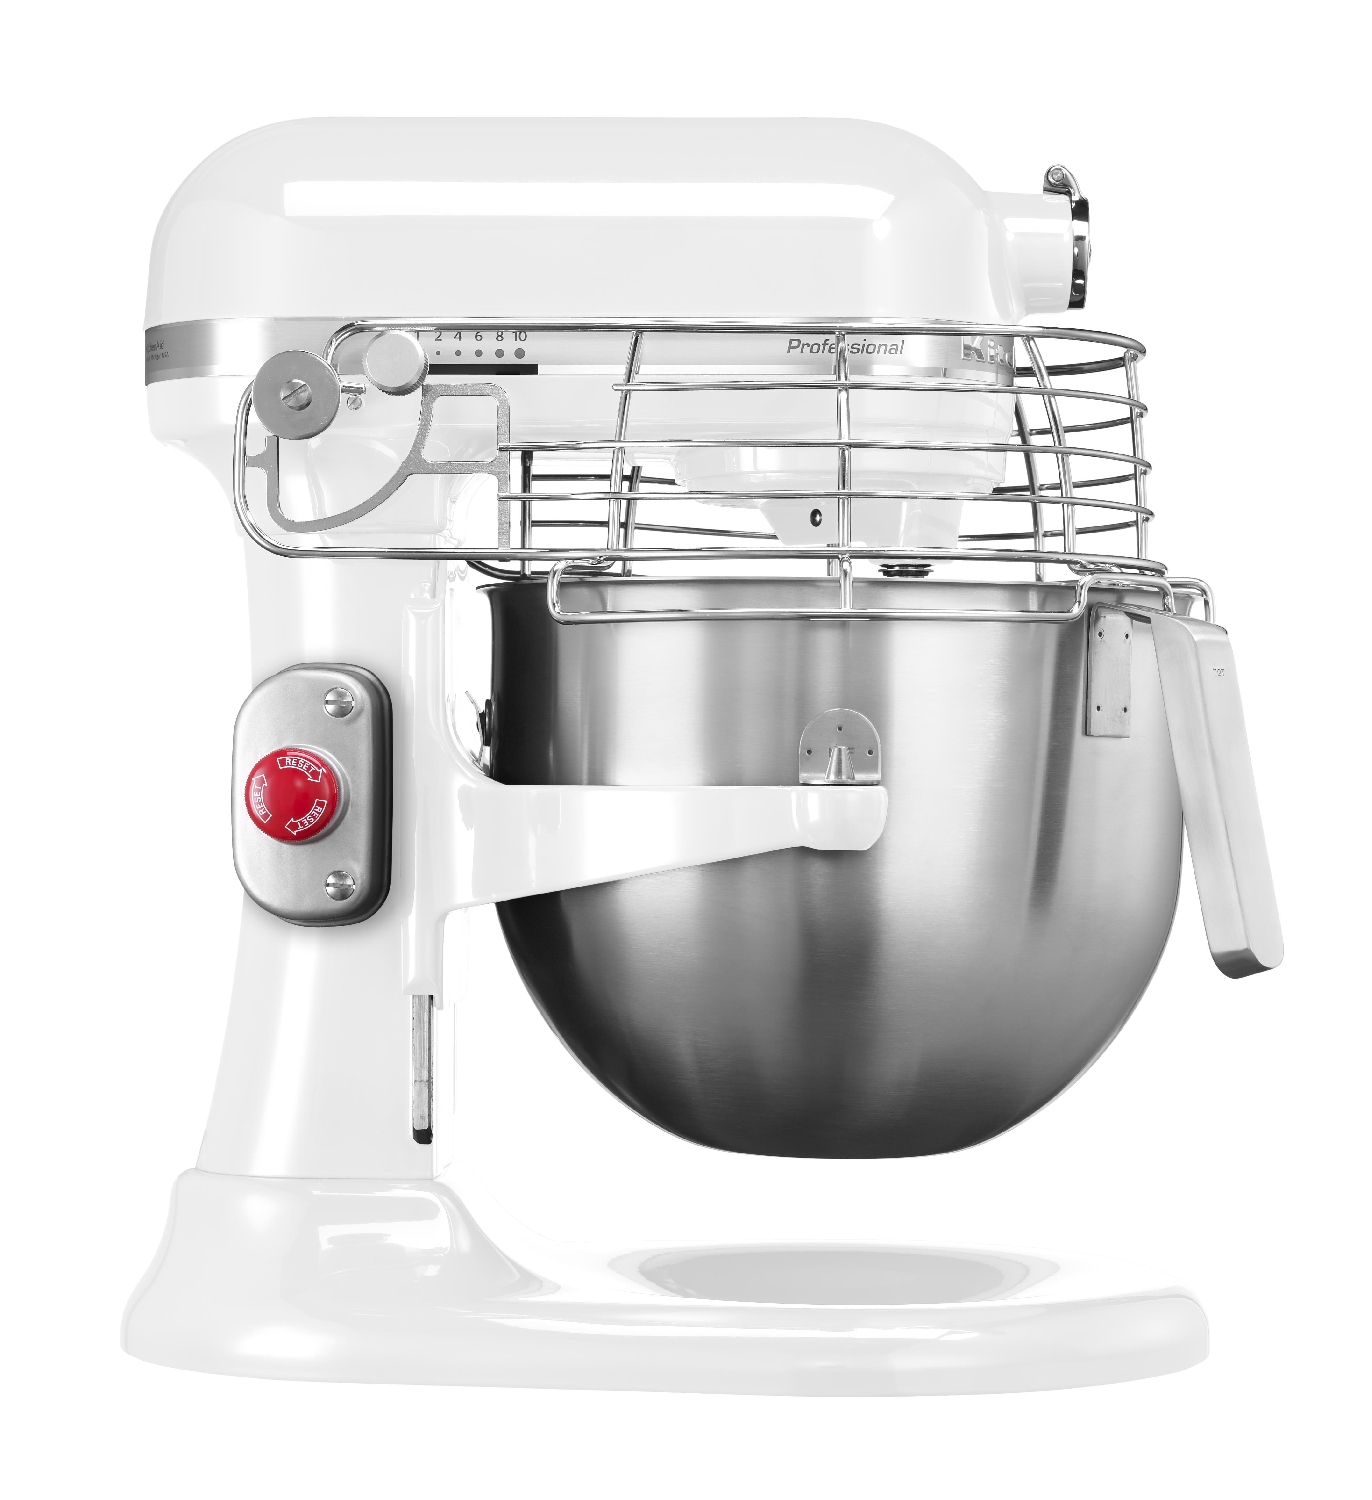 pmk0069--kitchenaid-planetary-mixer--professional--69lt